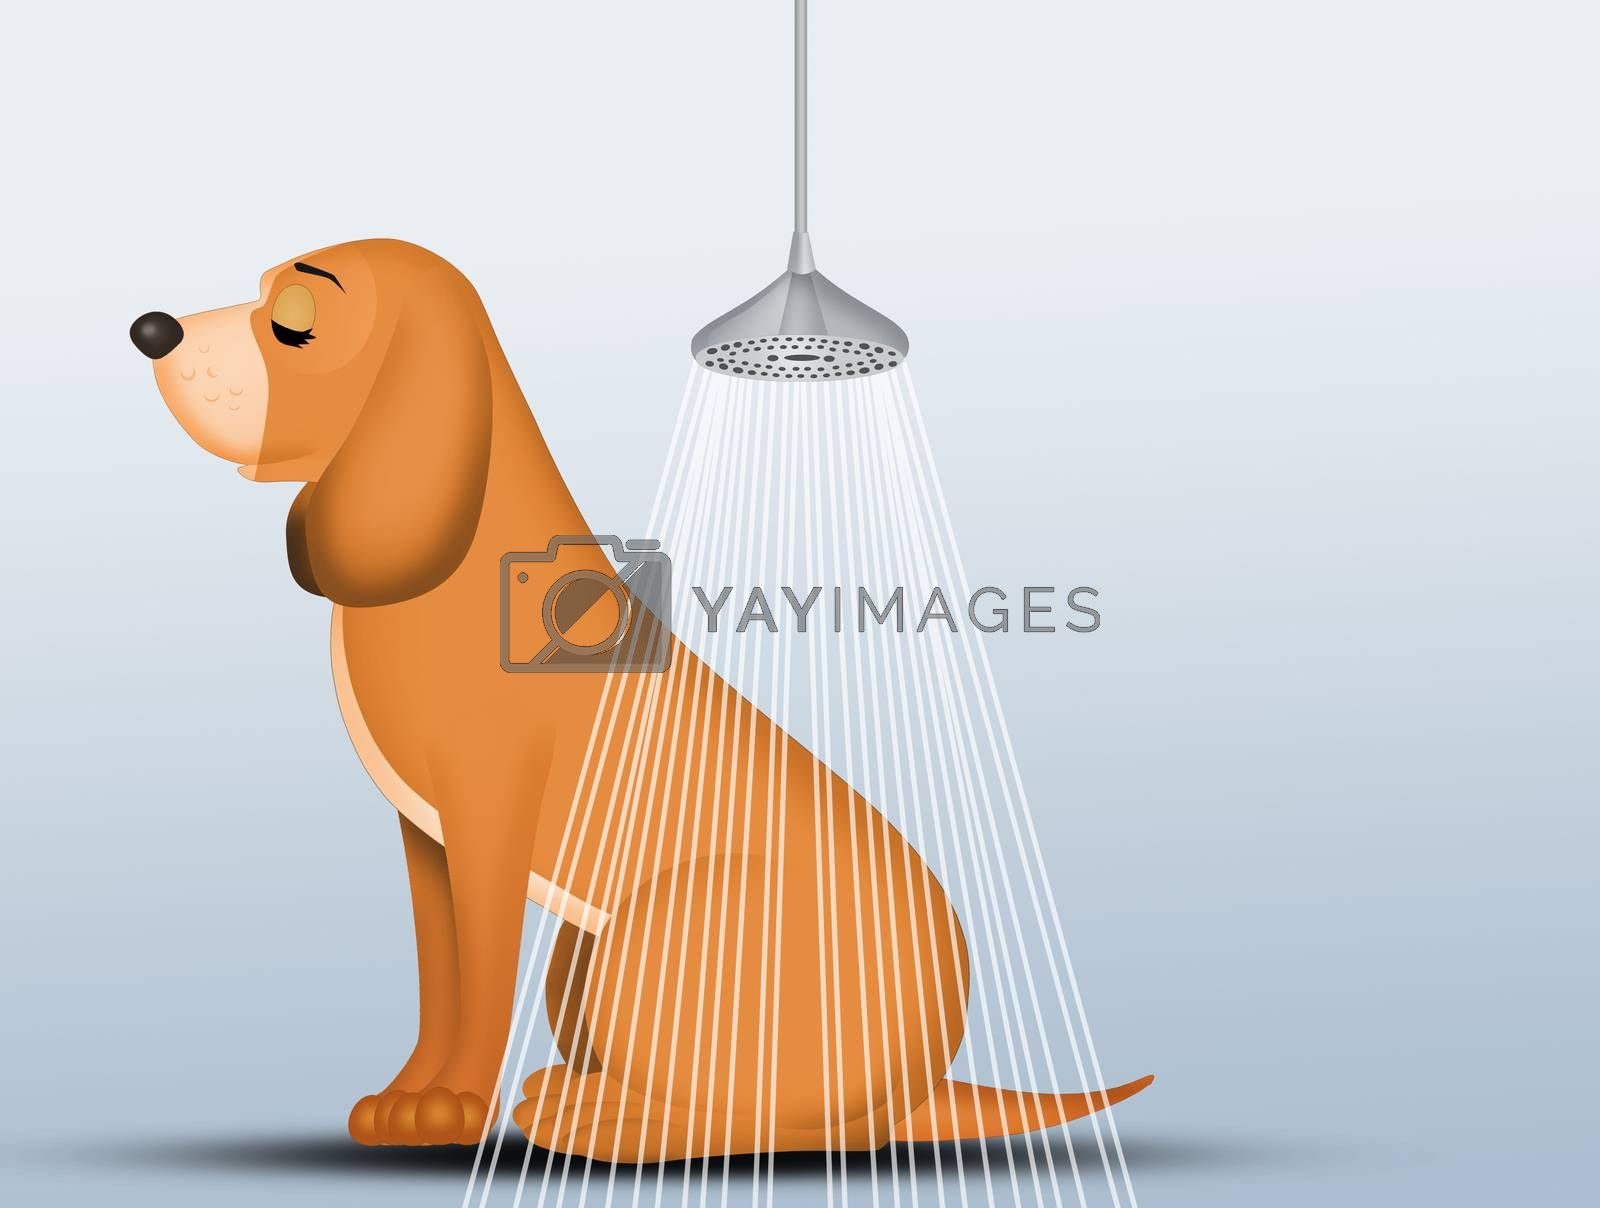 illustration of how to wash the dog